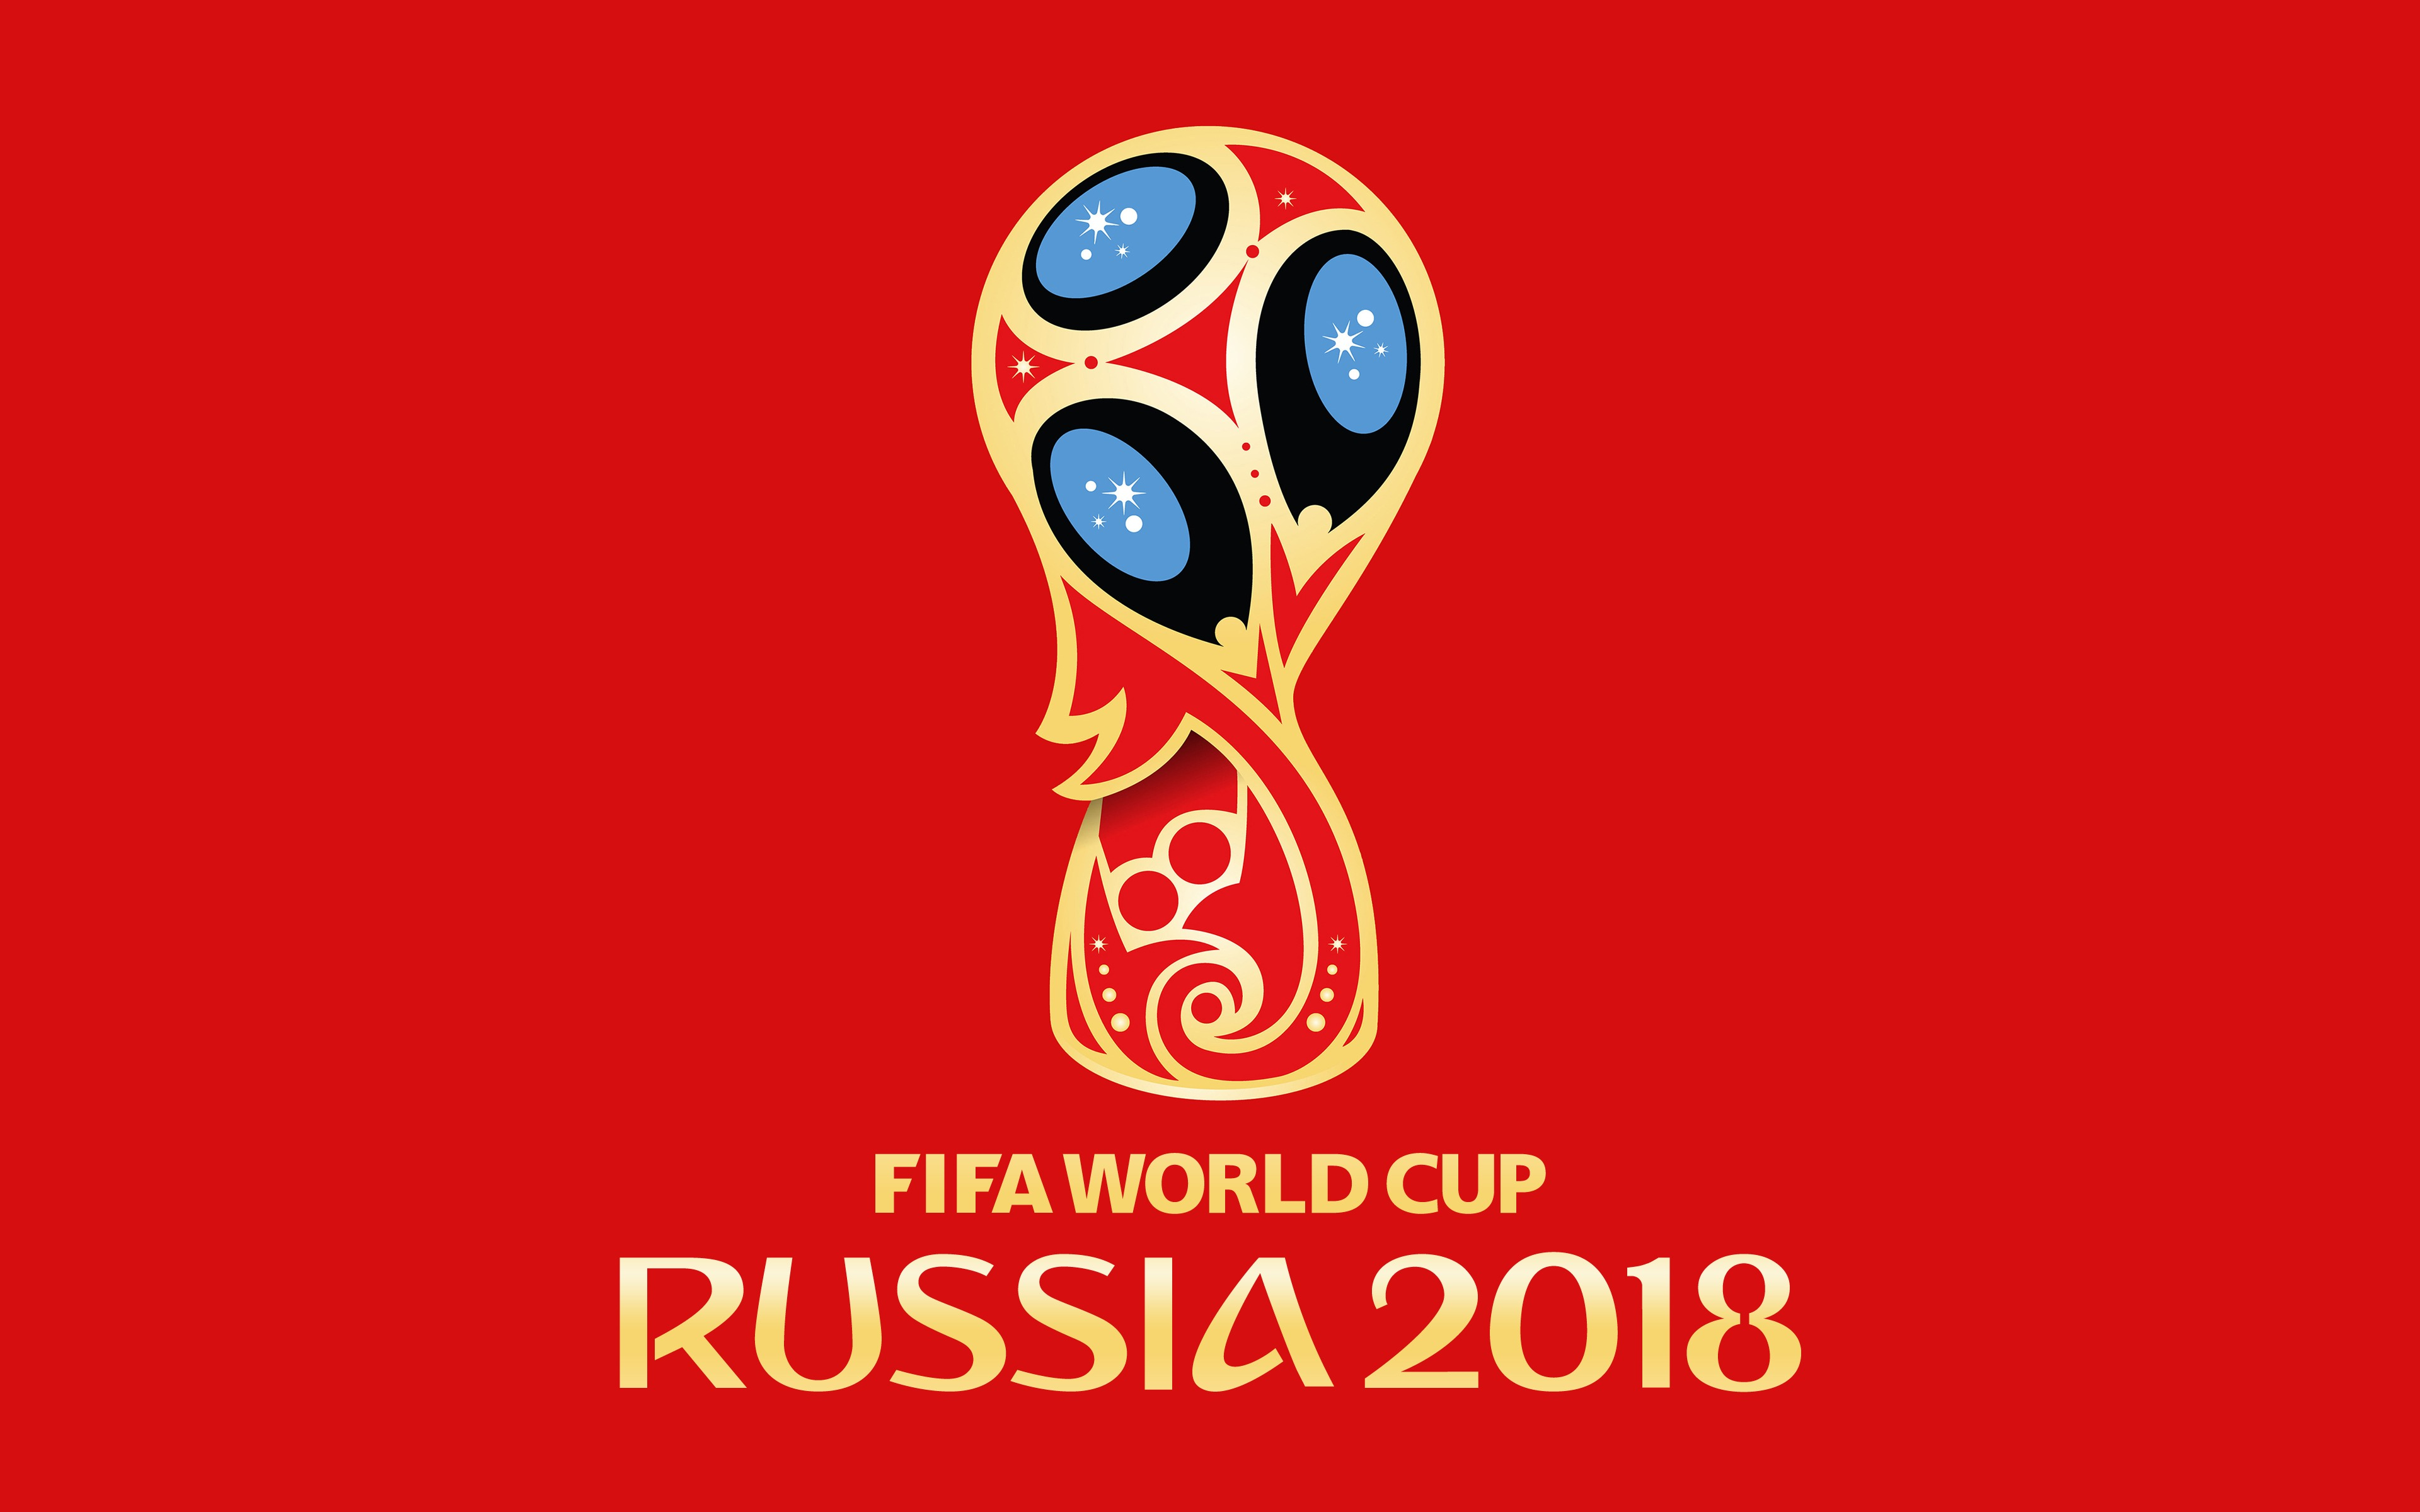 3840x2400 - FIFA World Cup 2018 Wallpapers 17